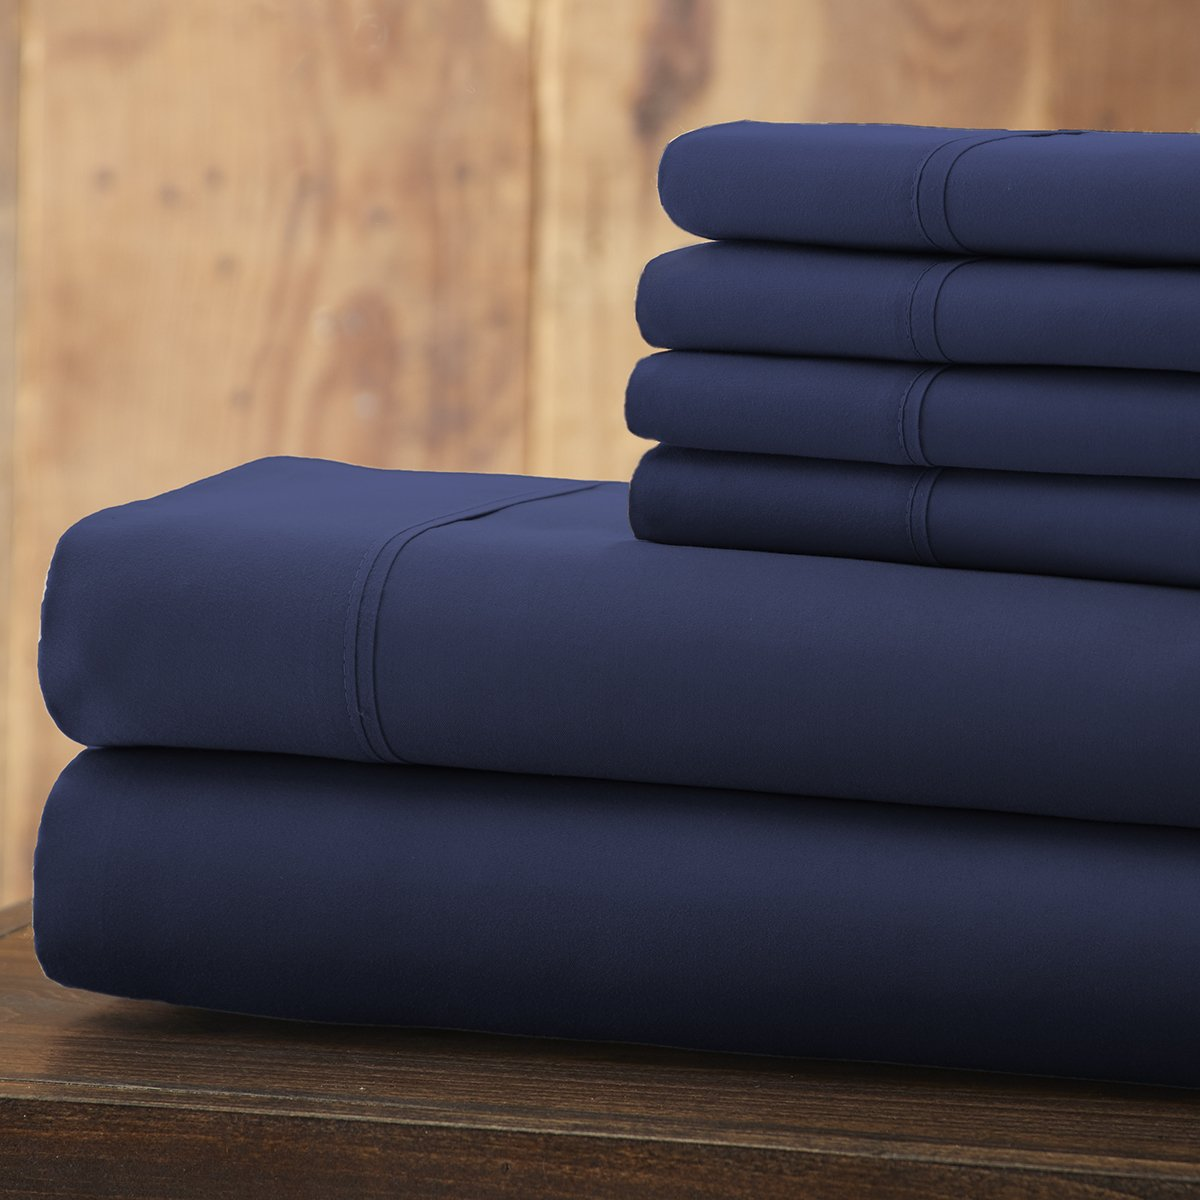 Spirit Linen 6 Piece Everyday Essentials 1800 Series Sheet Set, Queen, Navy